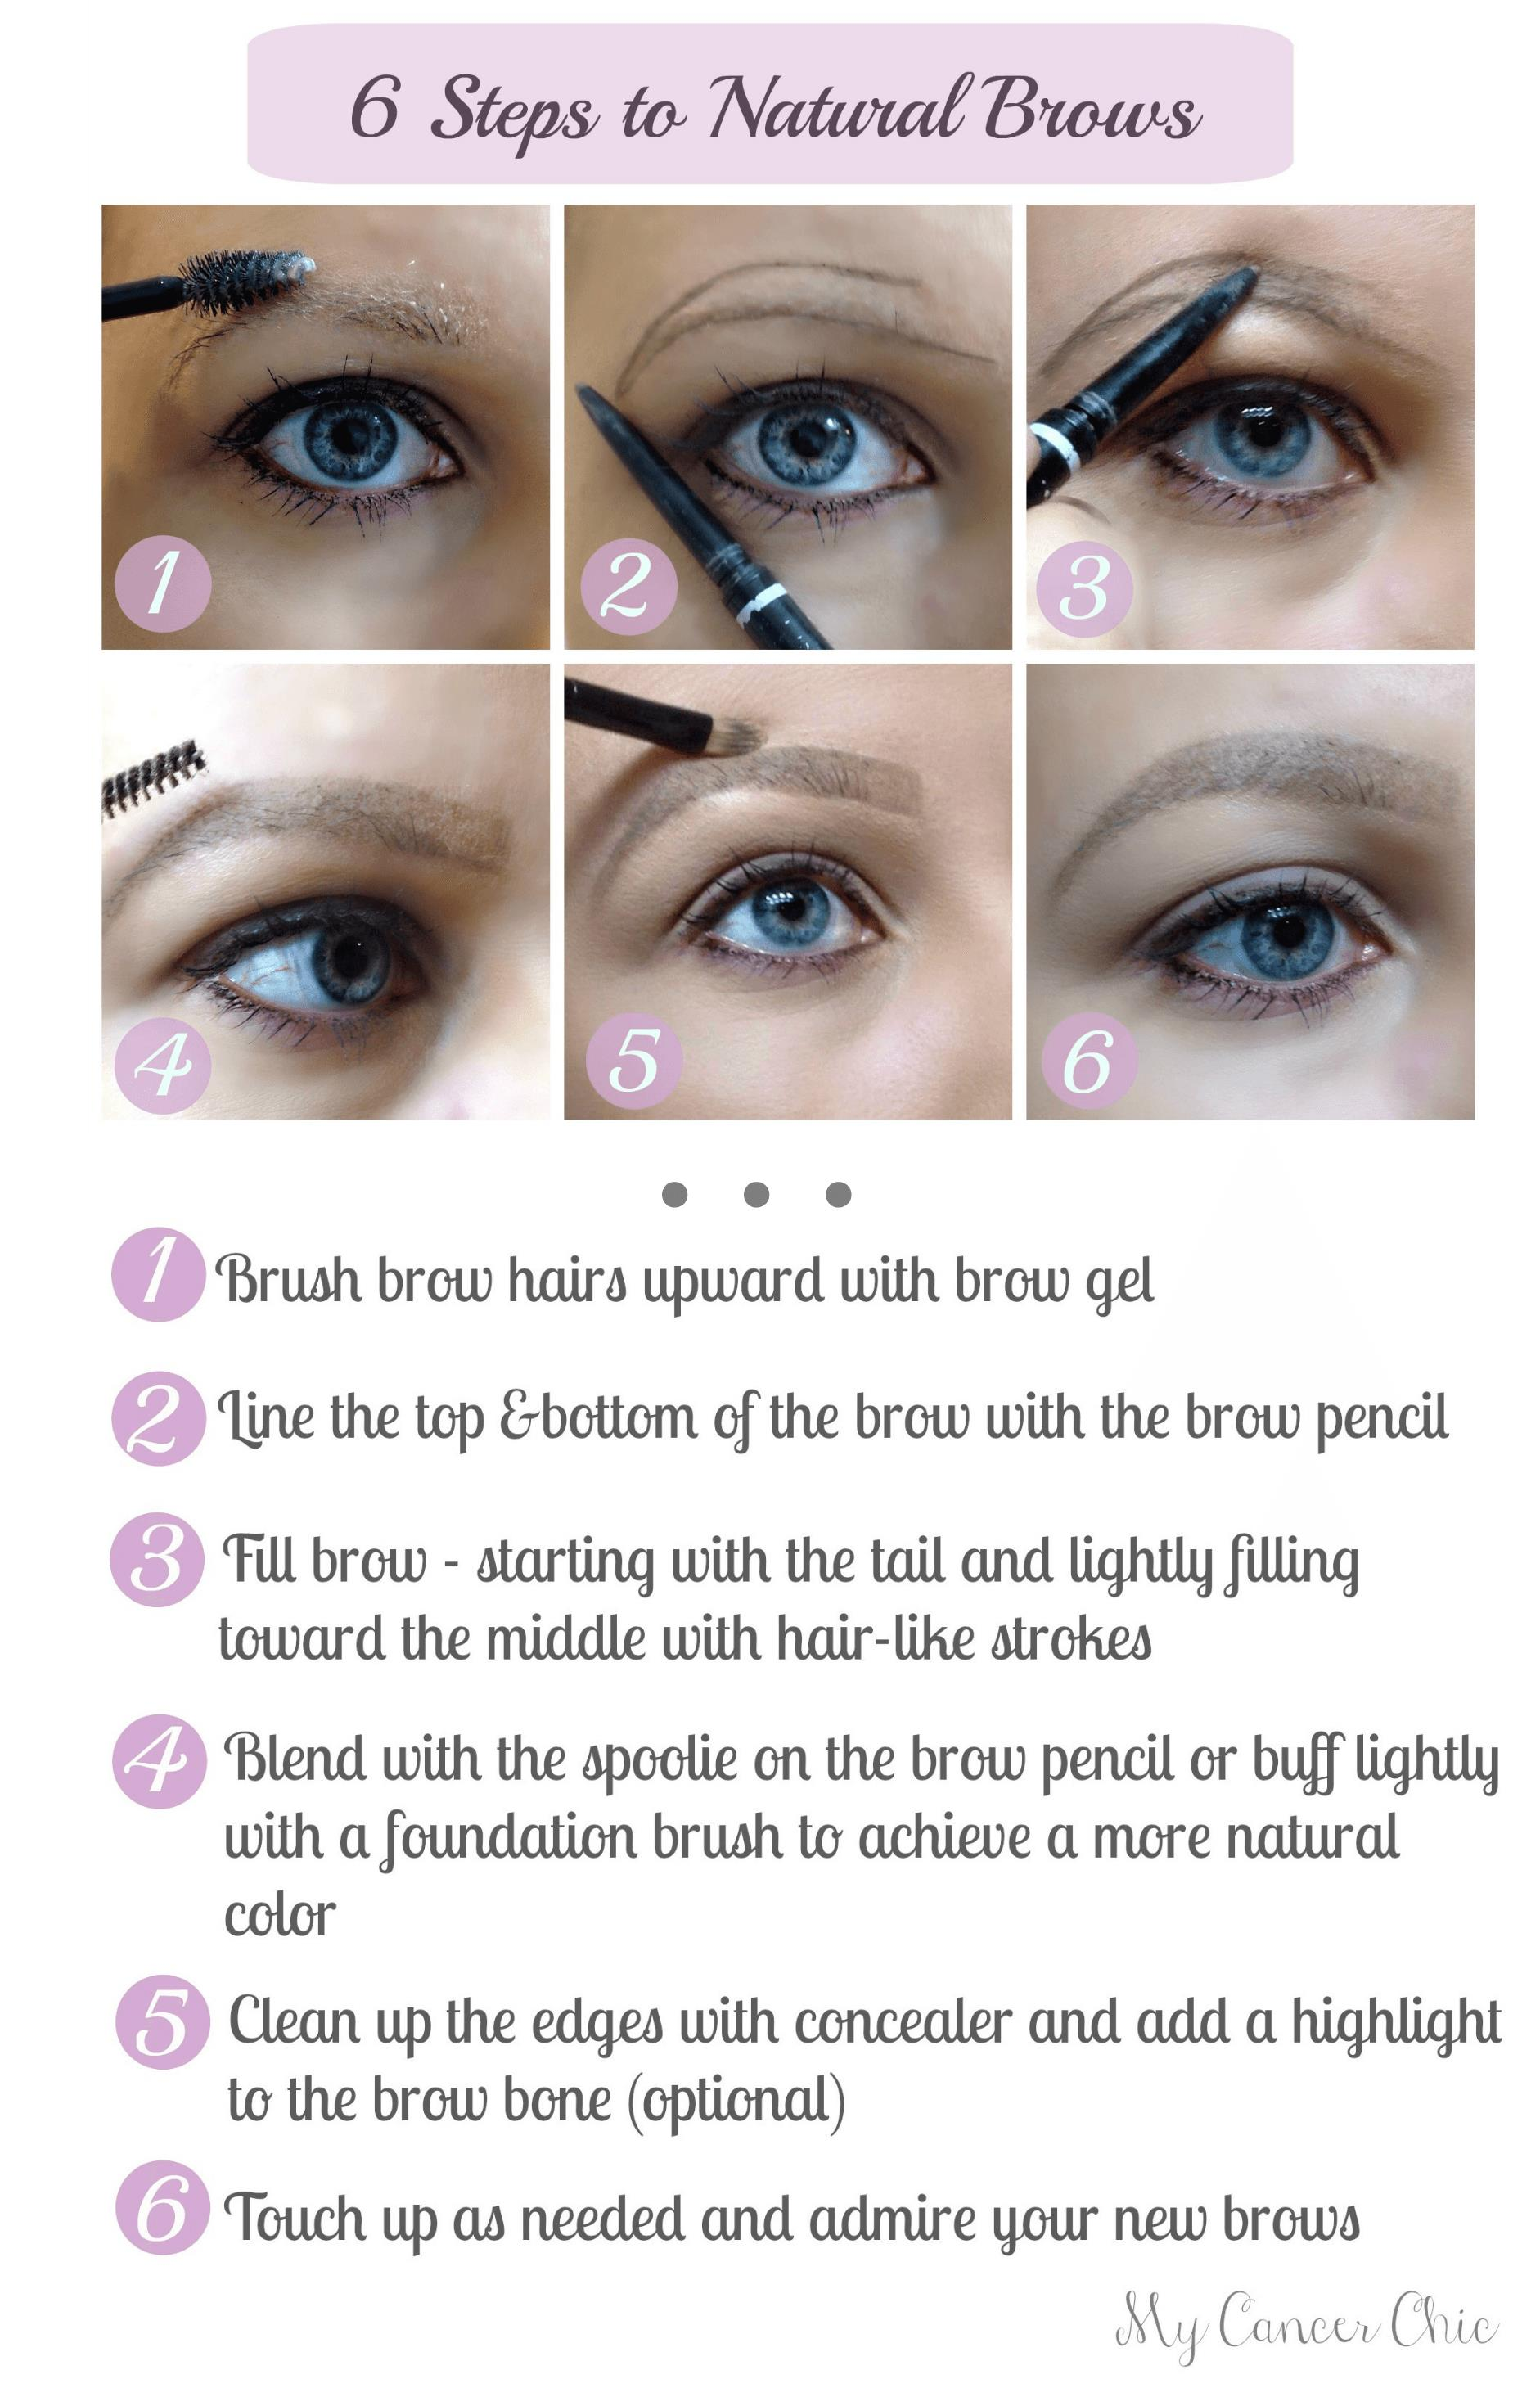 9 Steps to Natural Brows for Cancer Fighters